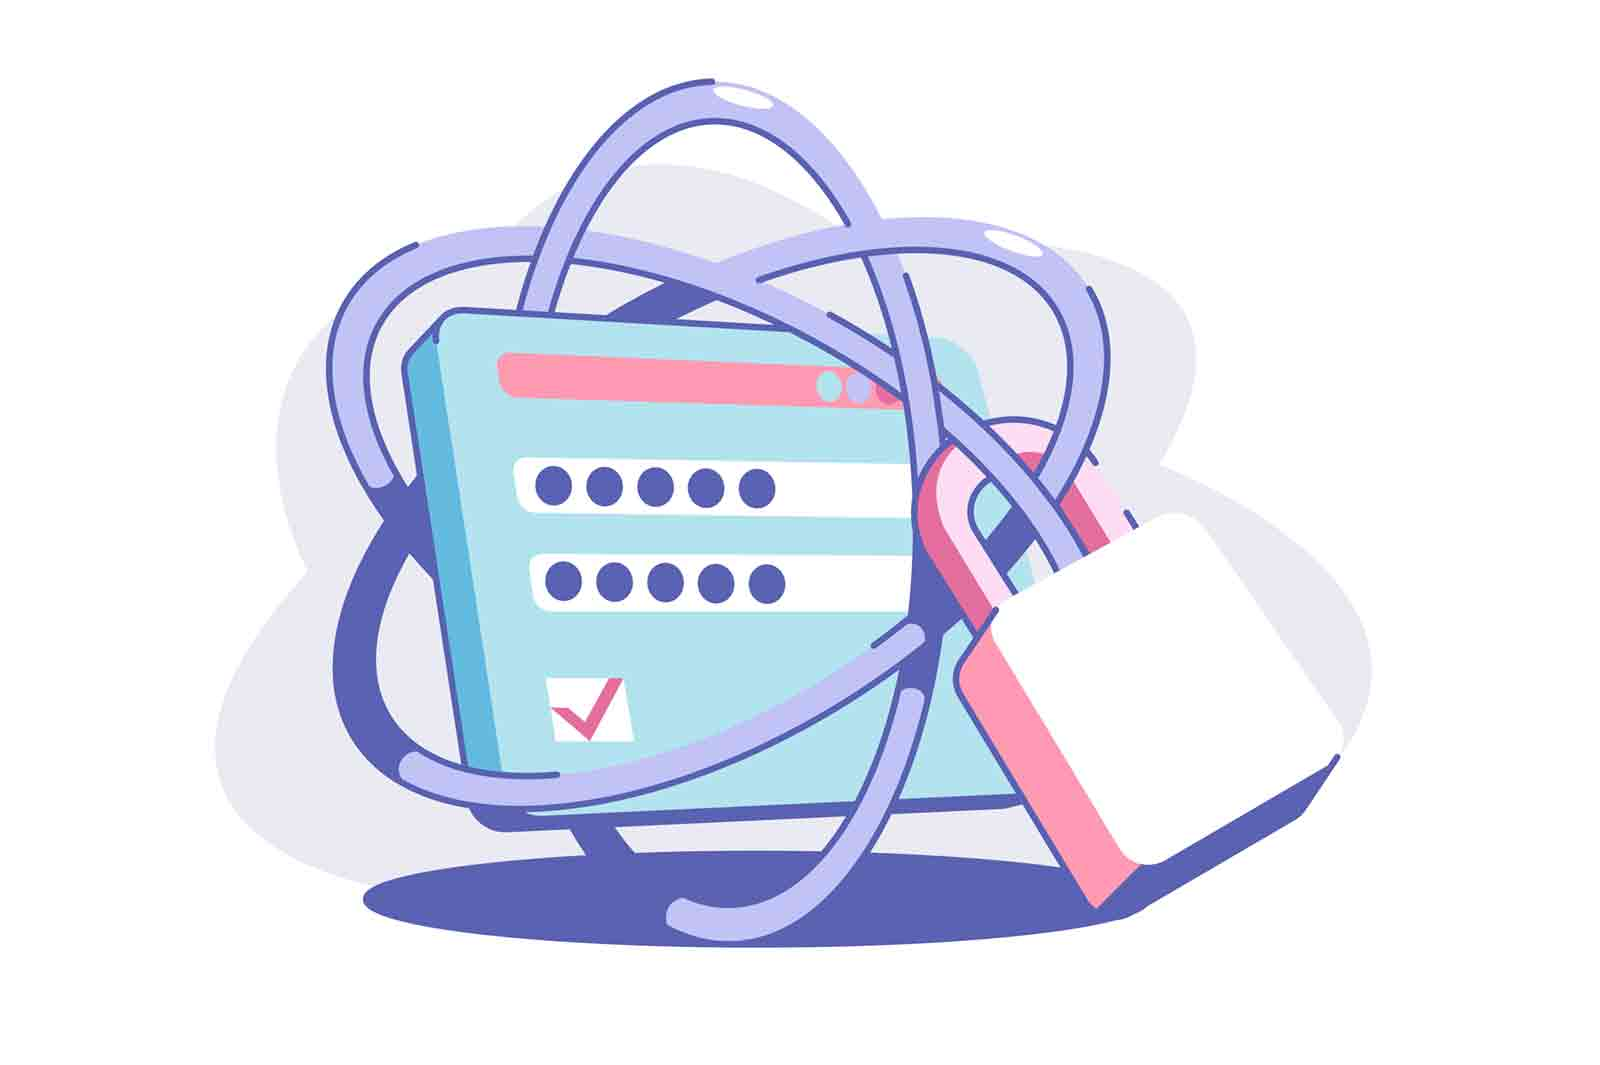 Solid web security vector illustration. Personal data protection with strong password. System and information privacy. Modern technology concept.